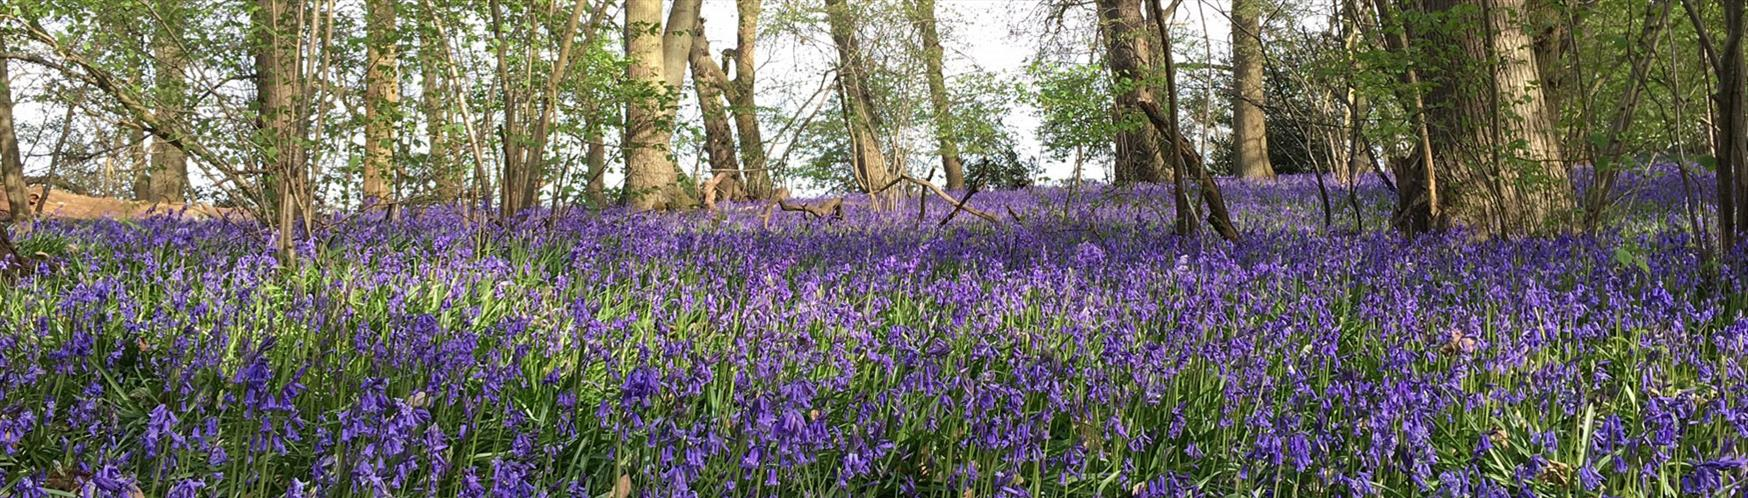 10 places to find the best spring flowers in surrey visit surrey enjoy spring flowers mightylinksfo